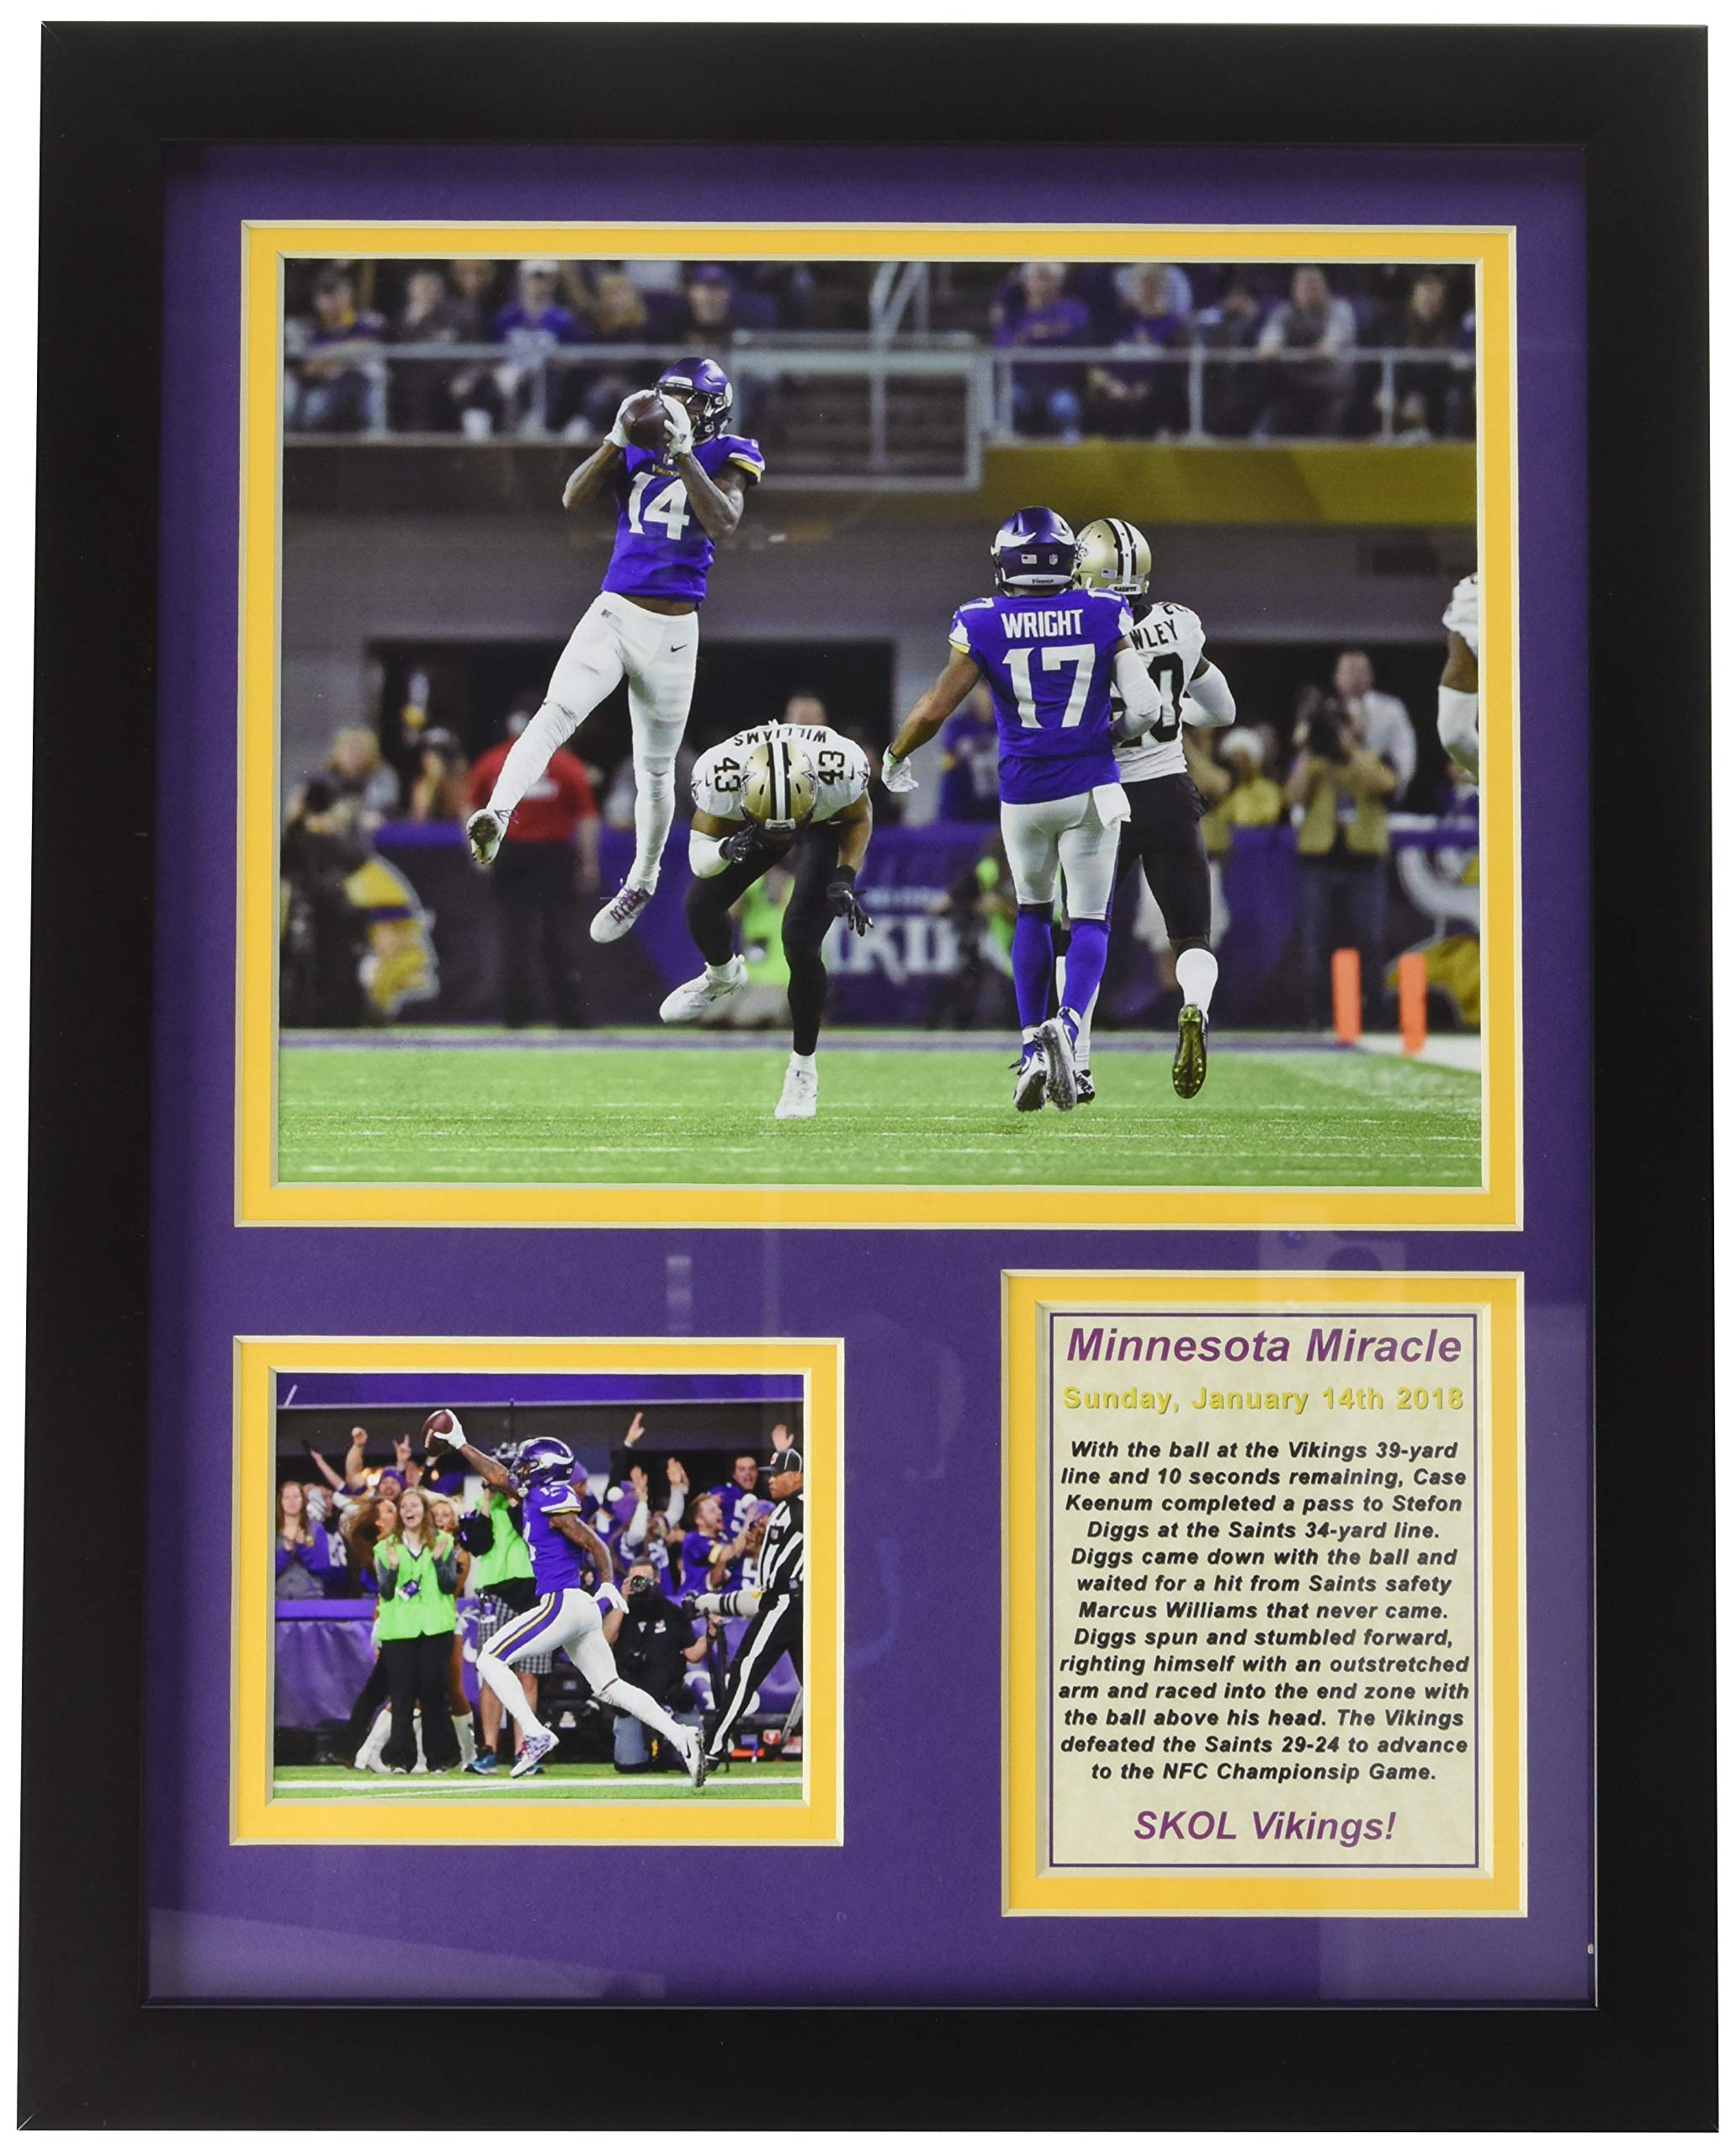 Minnesota Vikings - Minnesota Miracle - NFC Divisional Win - Framed 12''x15'' Double Matted Photos - Legends Never Die, Inc. by Legends Never Die